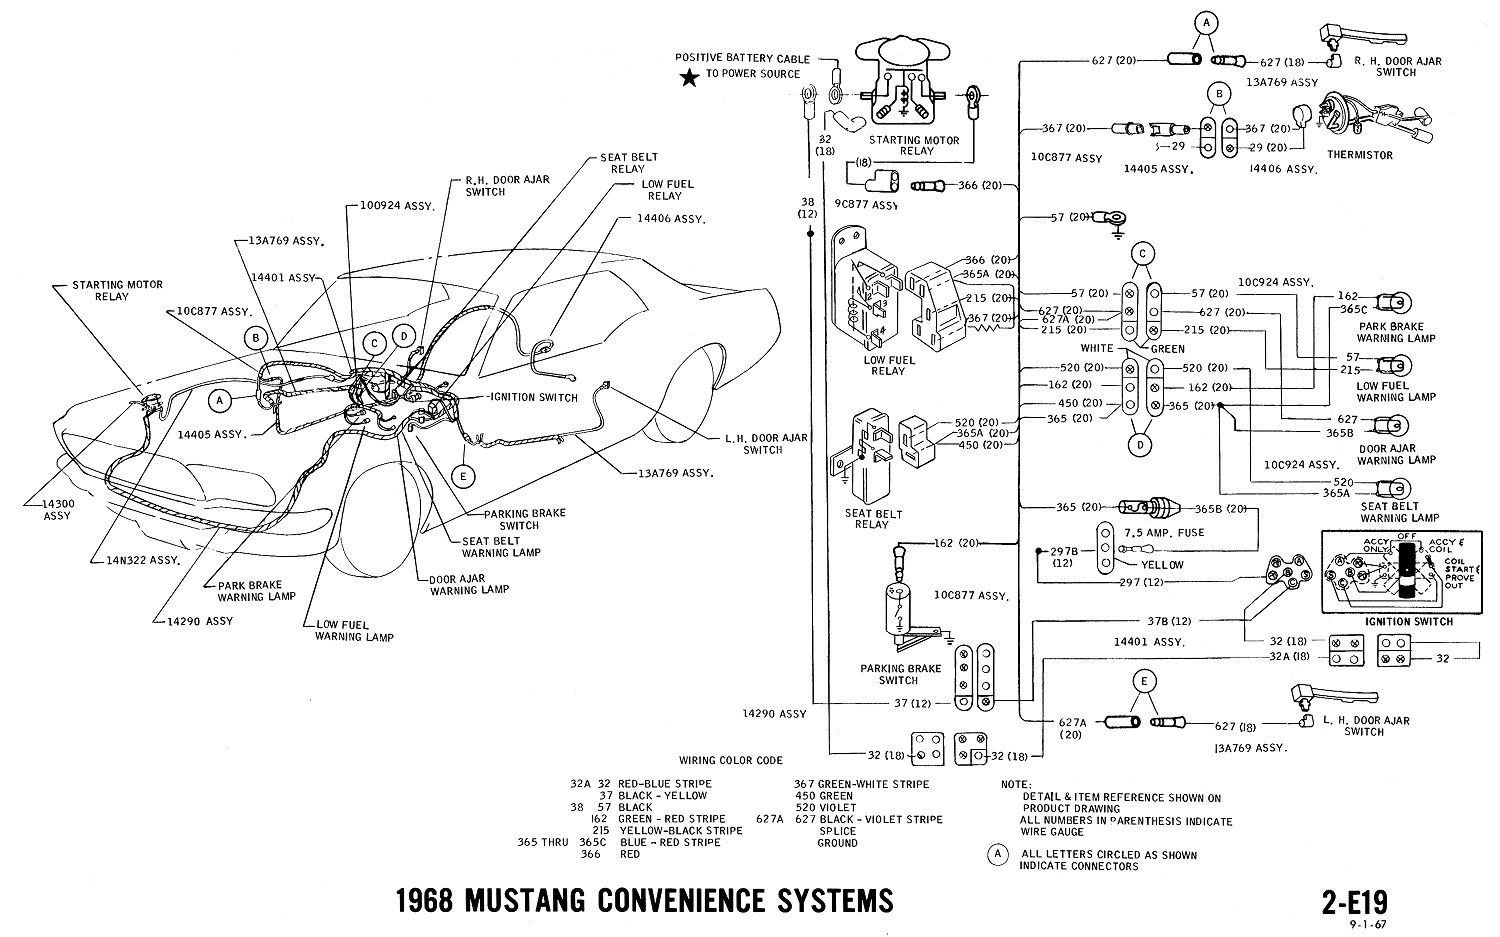 1968 mustang wiring diagrams and vacuum schematics average joe 1968 mustang wiring diagram convenience systems publicscrutiny Images